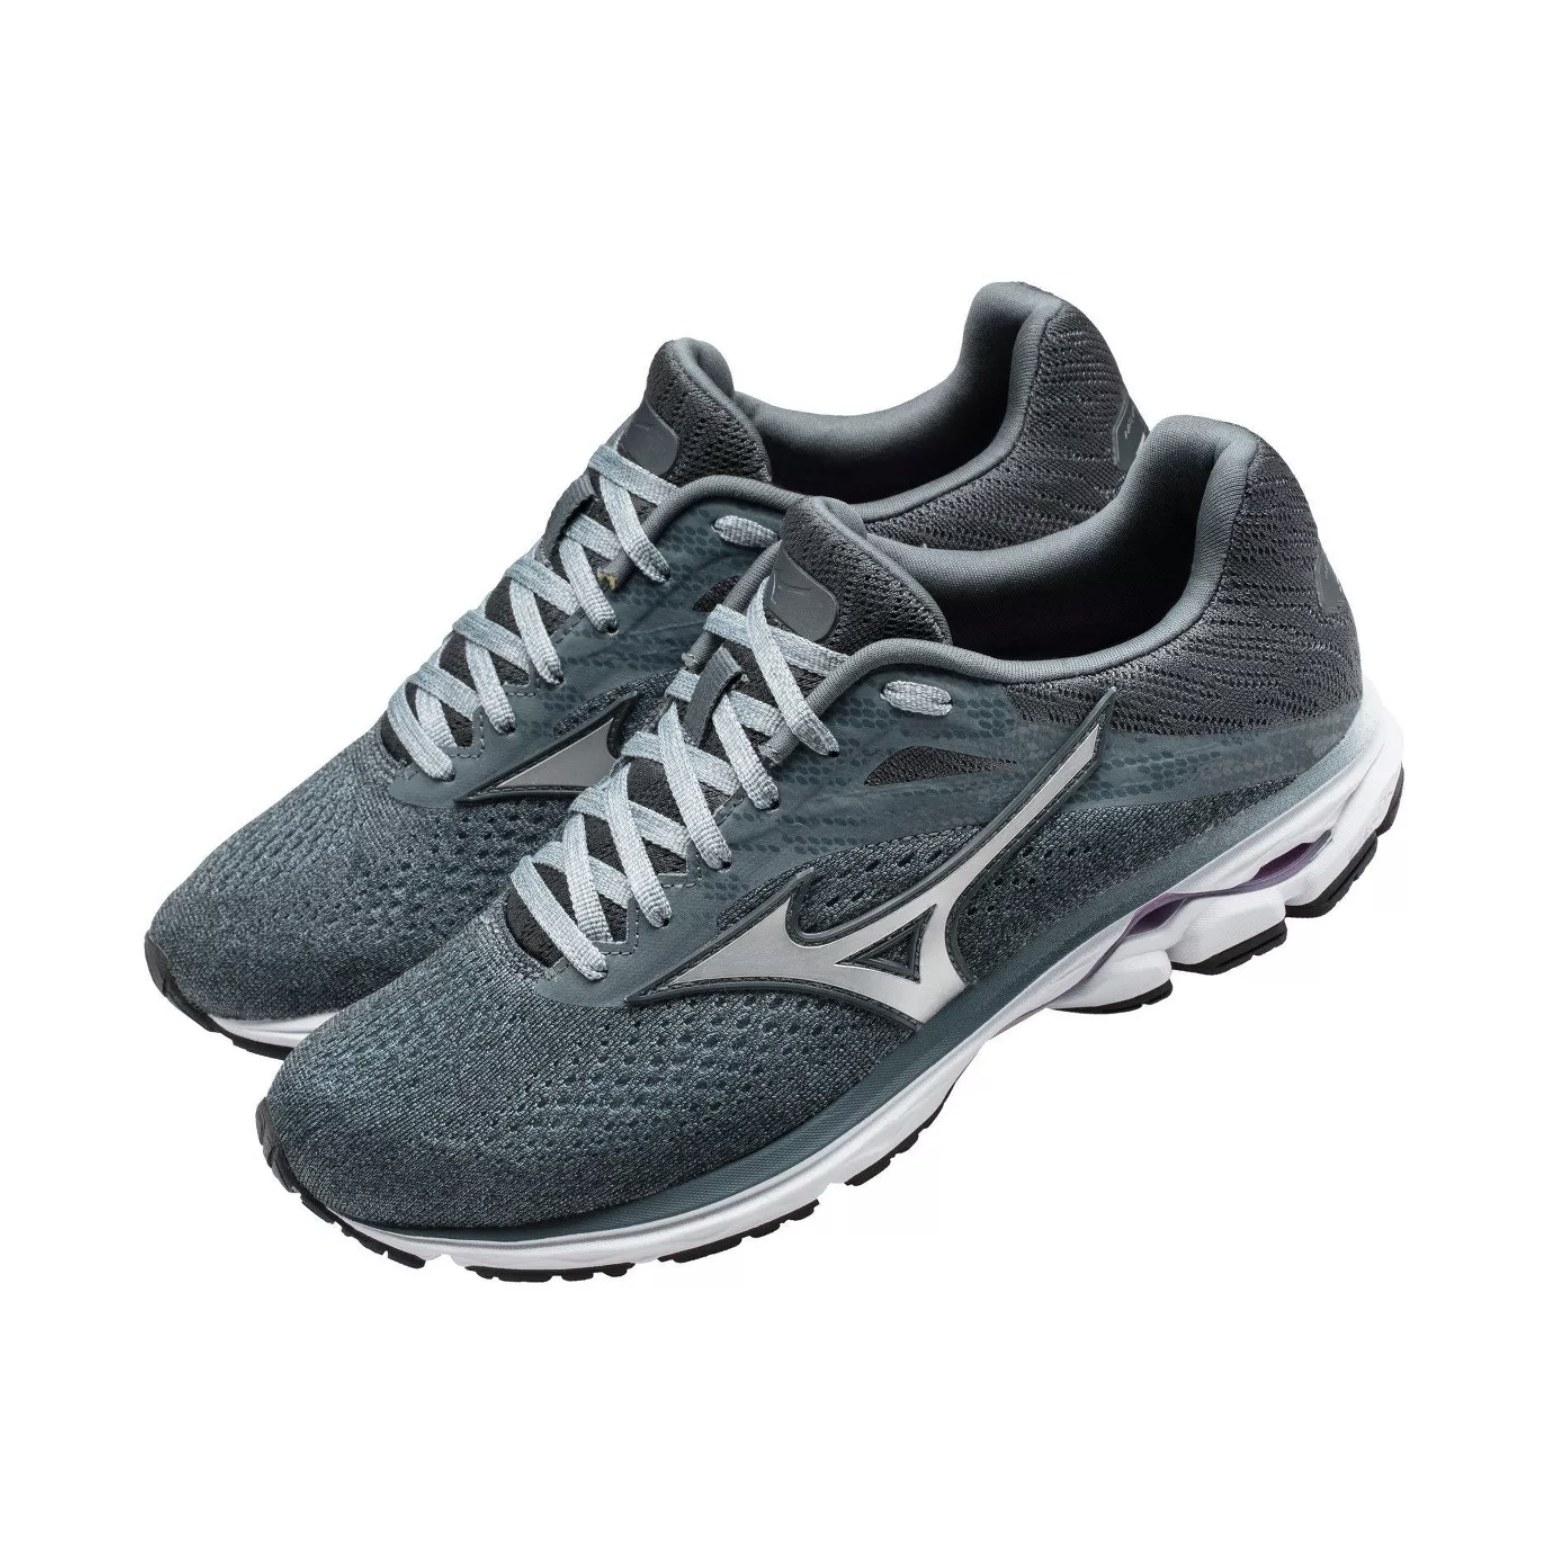 A pair of dark grey sneakers with white and solver accents